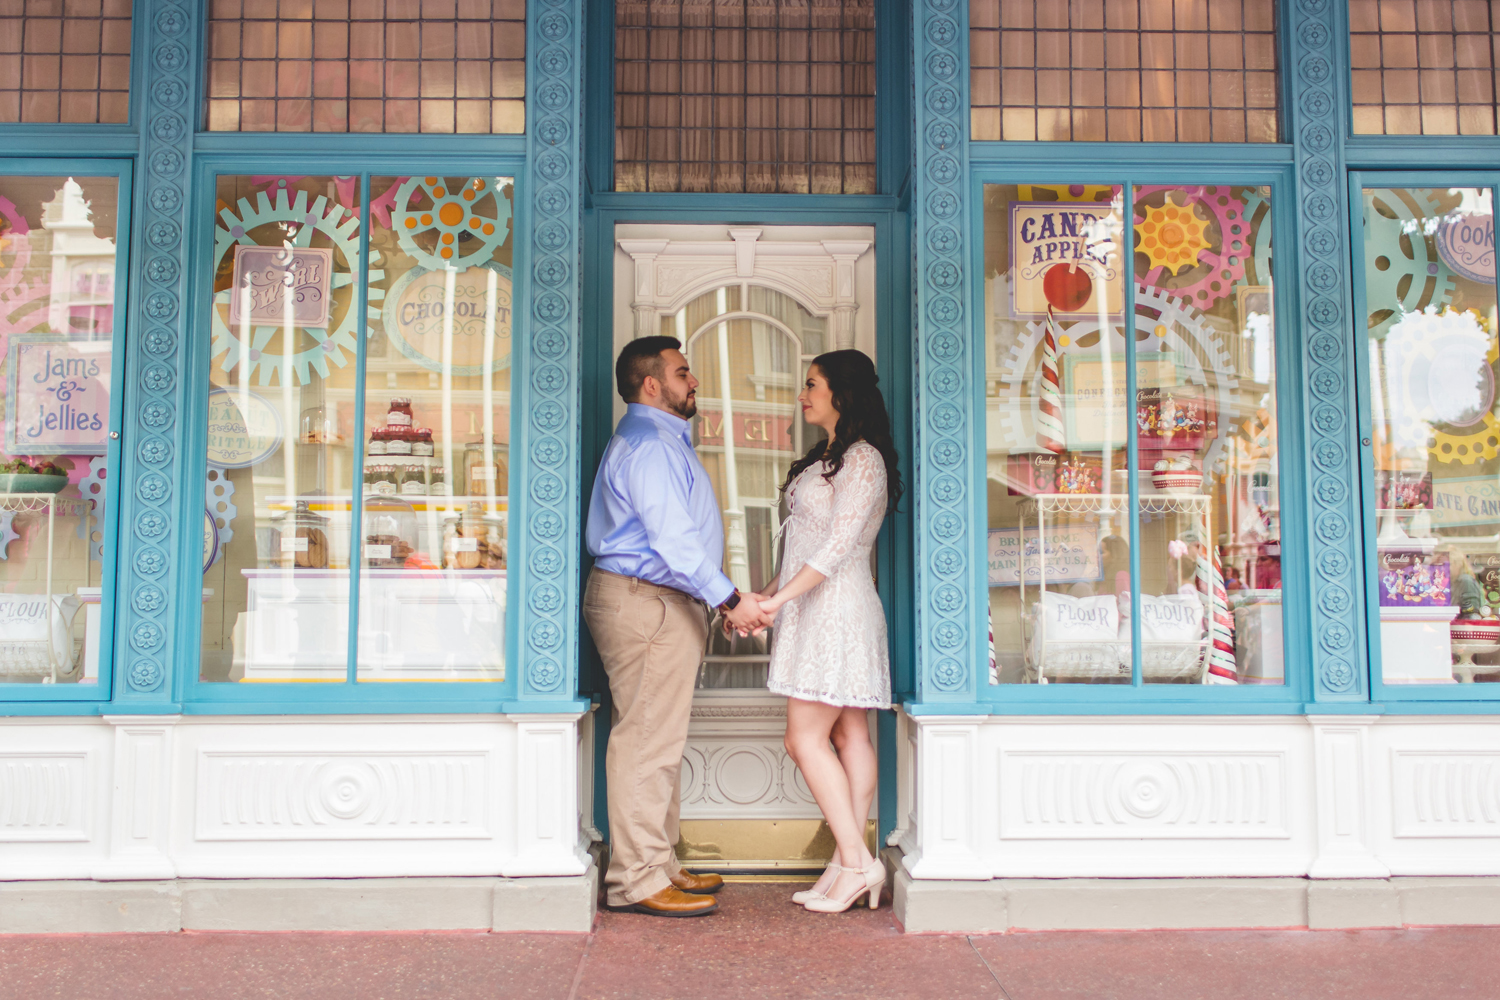 Darling Candy Shop Engagement photo at Disney Magic Kingdom